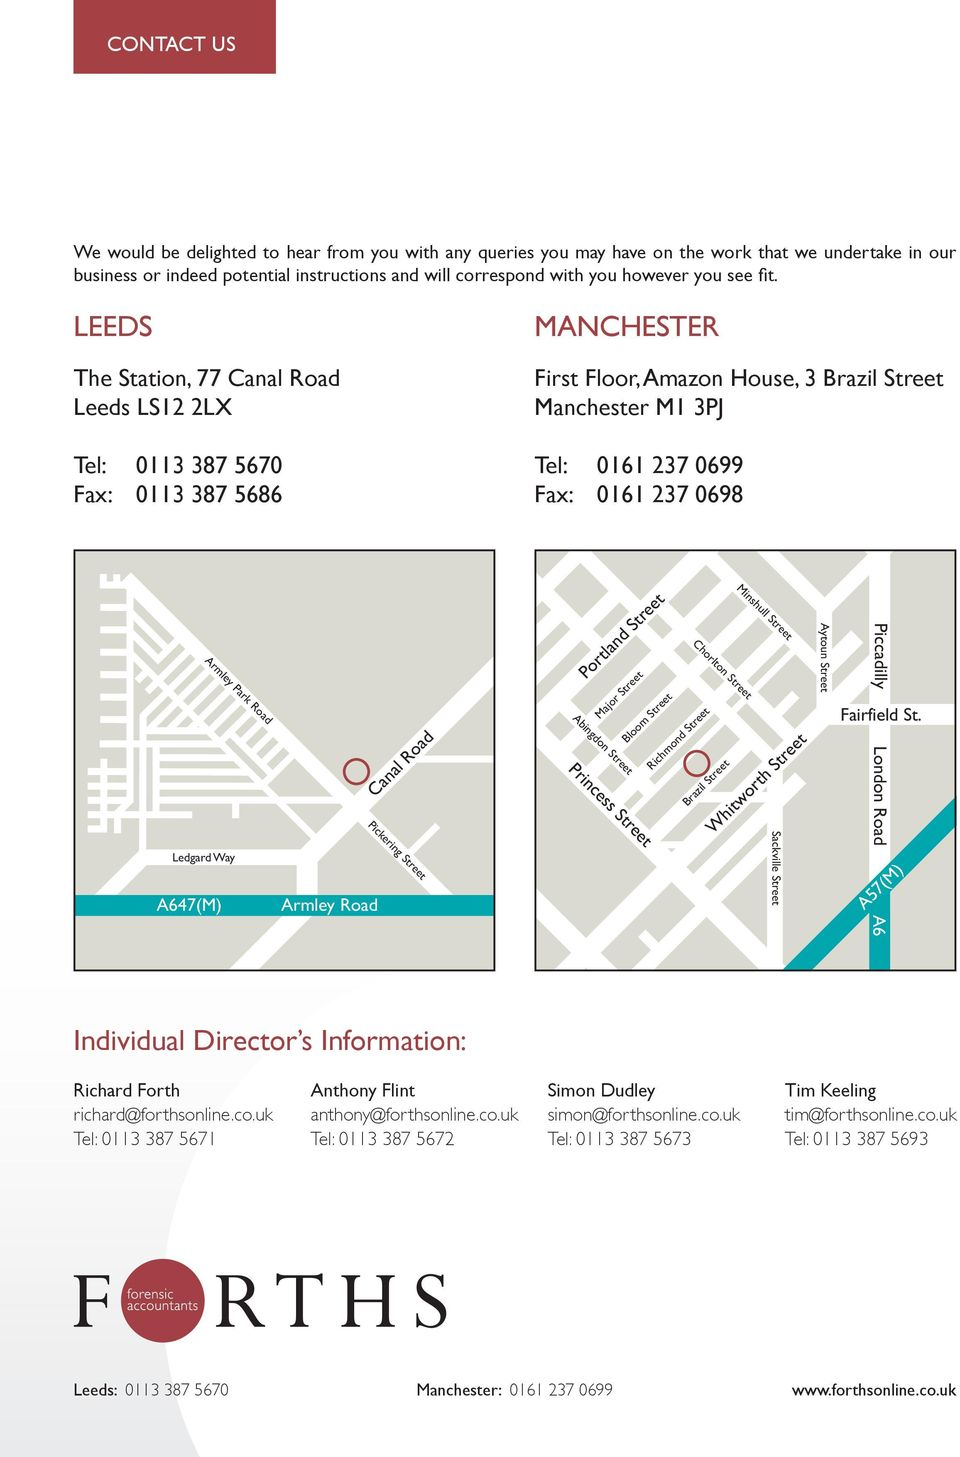 LEEDS The Station, 77 Canal Road Leeds LS12 2LX Tel: 0113 387 5670 Fax: 0113 387 5686 MANCHESTER First Floor, Amazon House, 3 Brazil Street Manchester M1 3PJ Tel: 0161 237 0699 Fax: 0161 237 0698